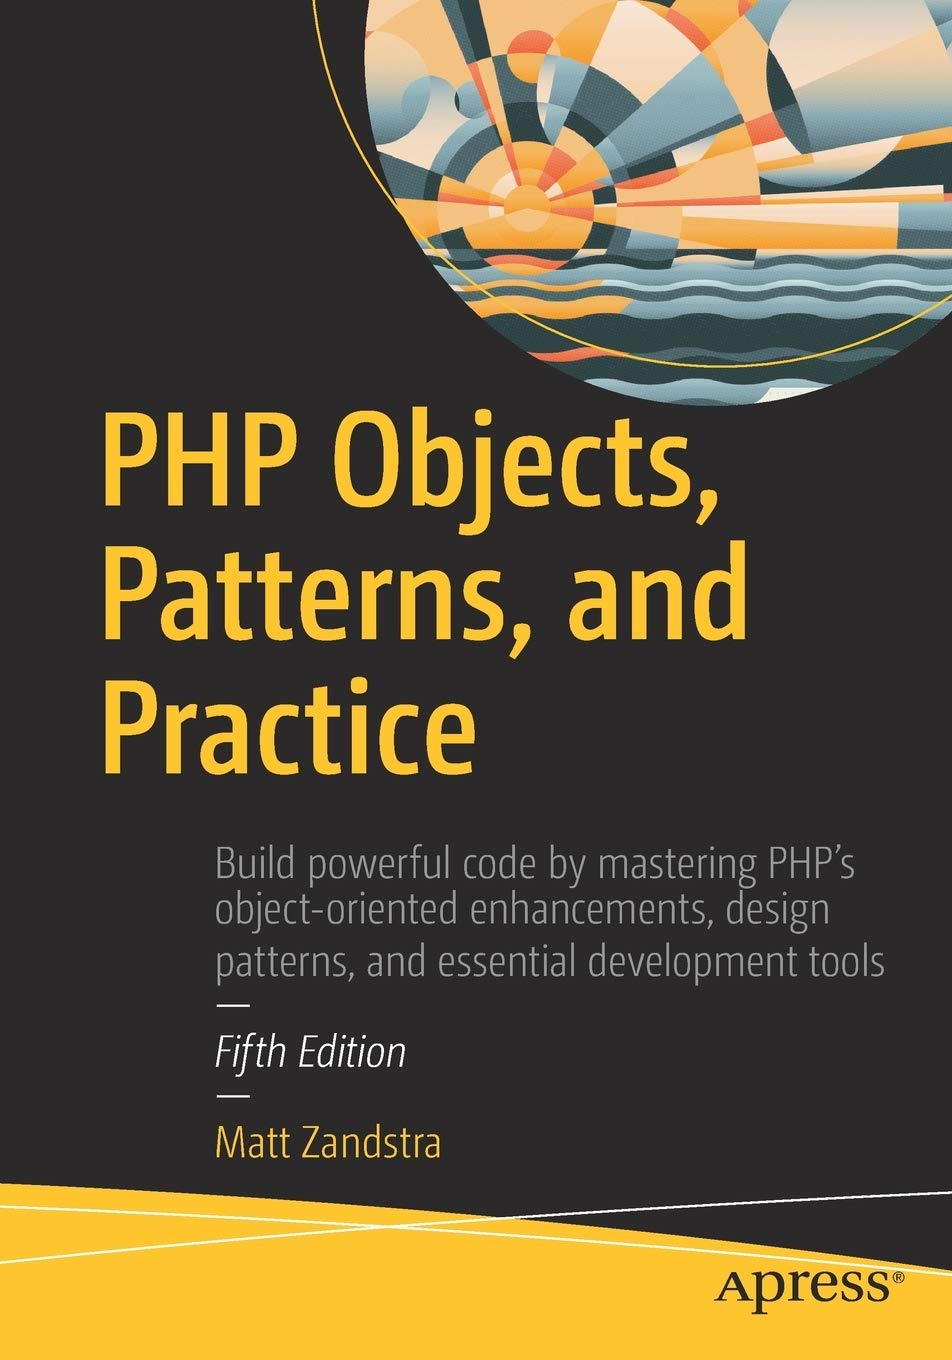 Image OfPHP Objects, Patterns, And Practice Lingua Inglese